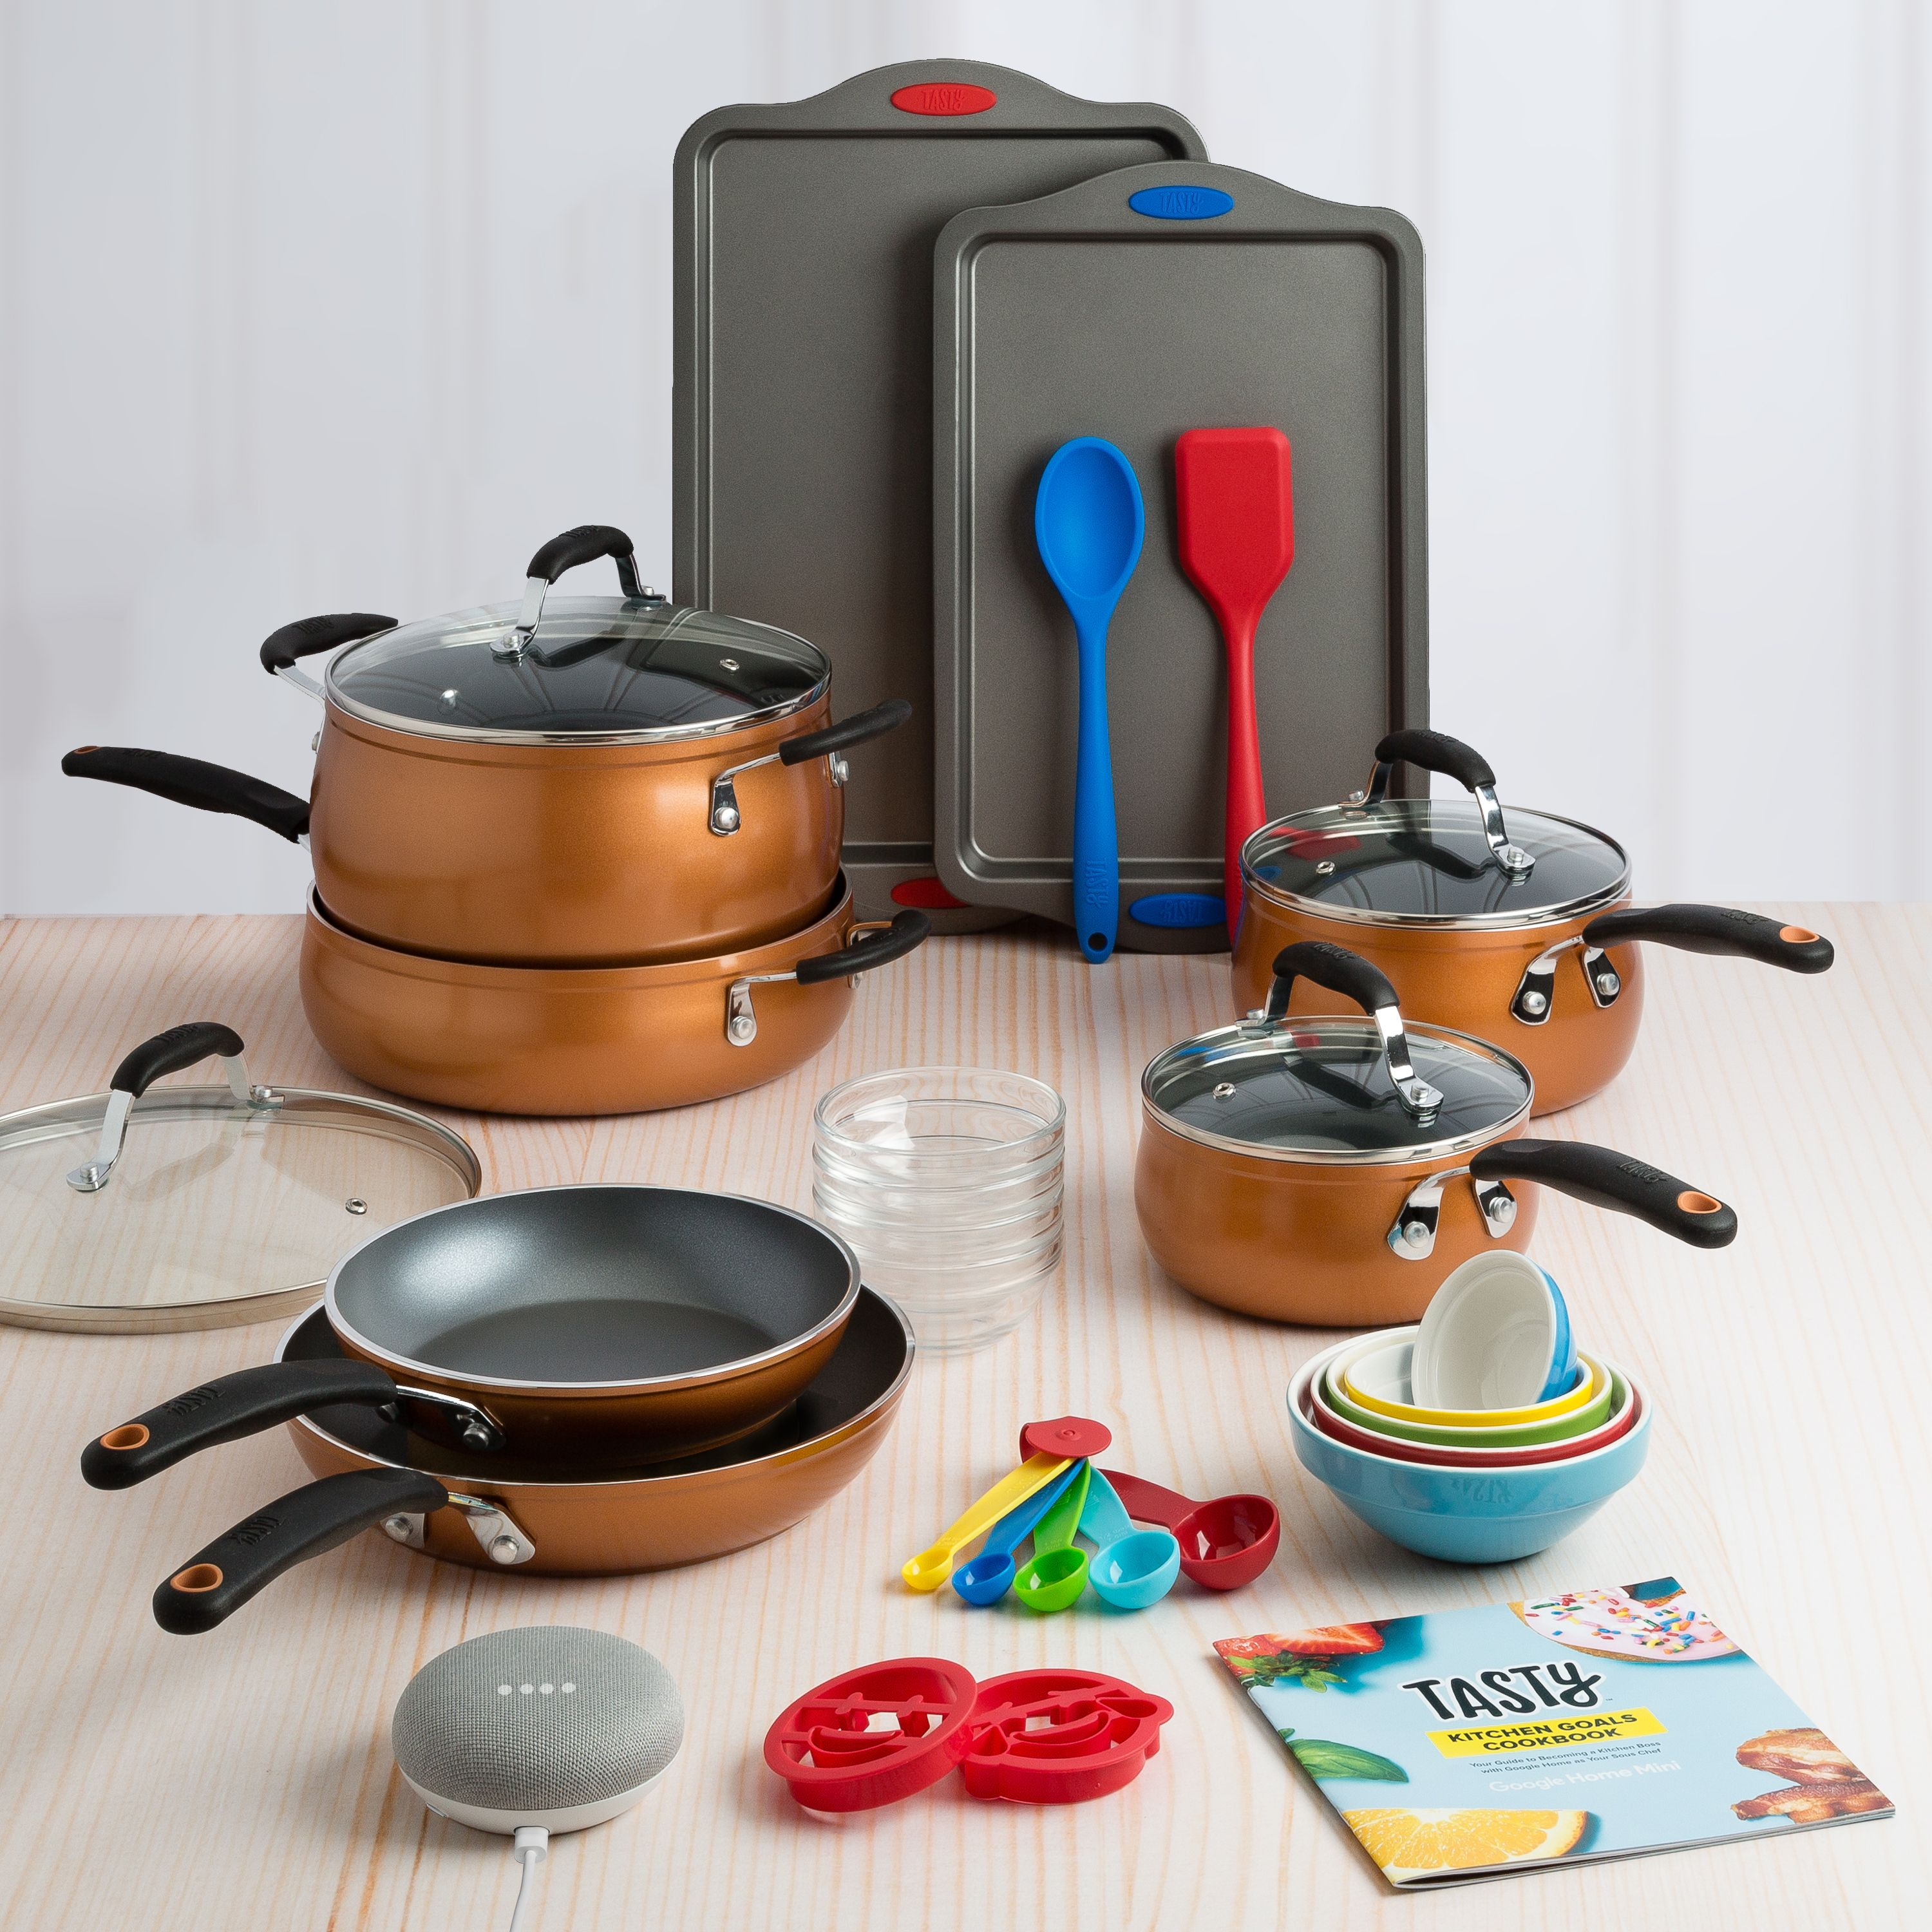 Tasty 30 Piece Non-Stick Cookware Set + Google Home Mini - Copper